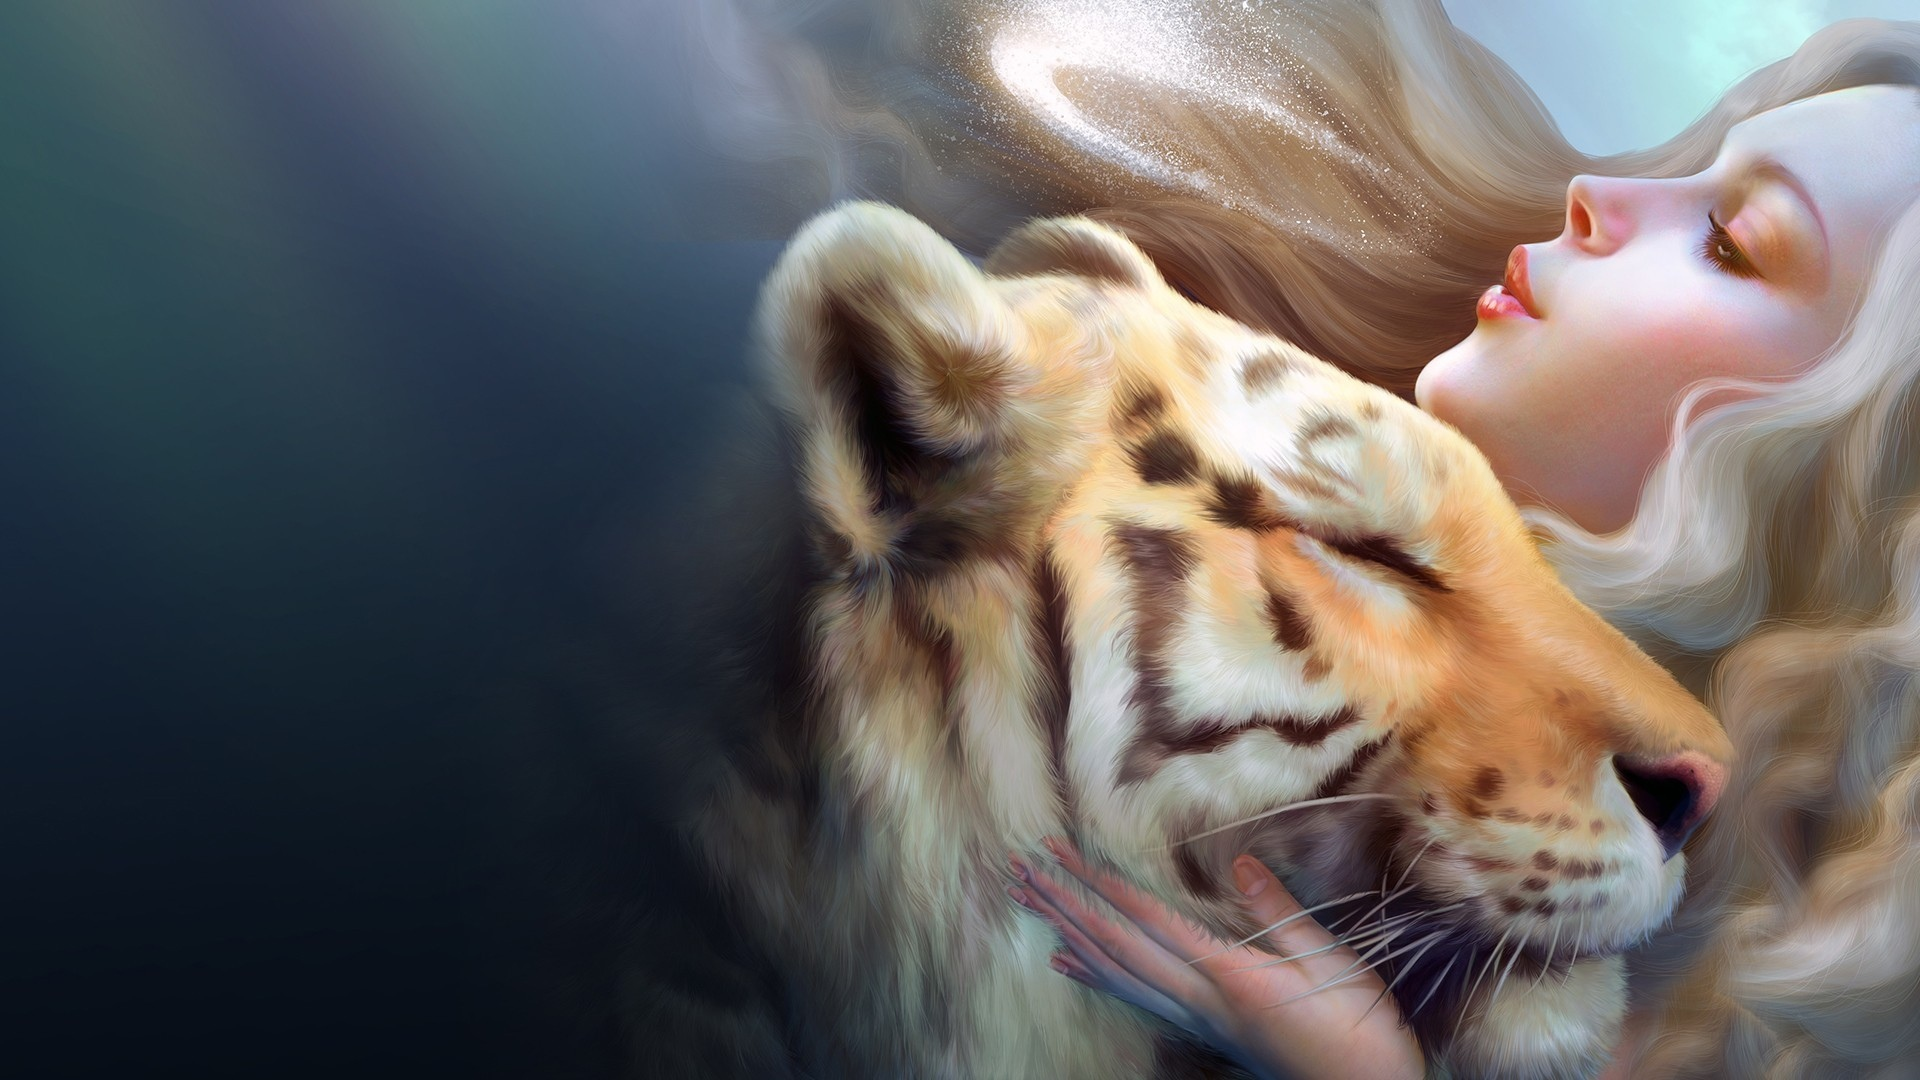 Download Fantasy Tiger Girl HD Wallpapers 5569 Full Size 1920x1080